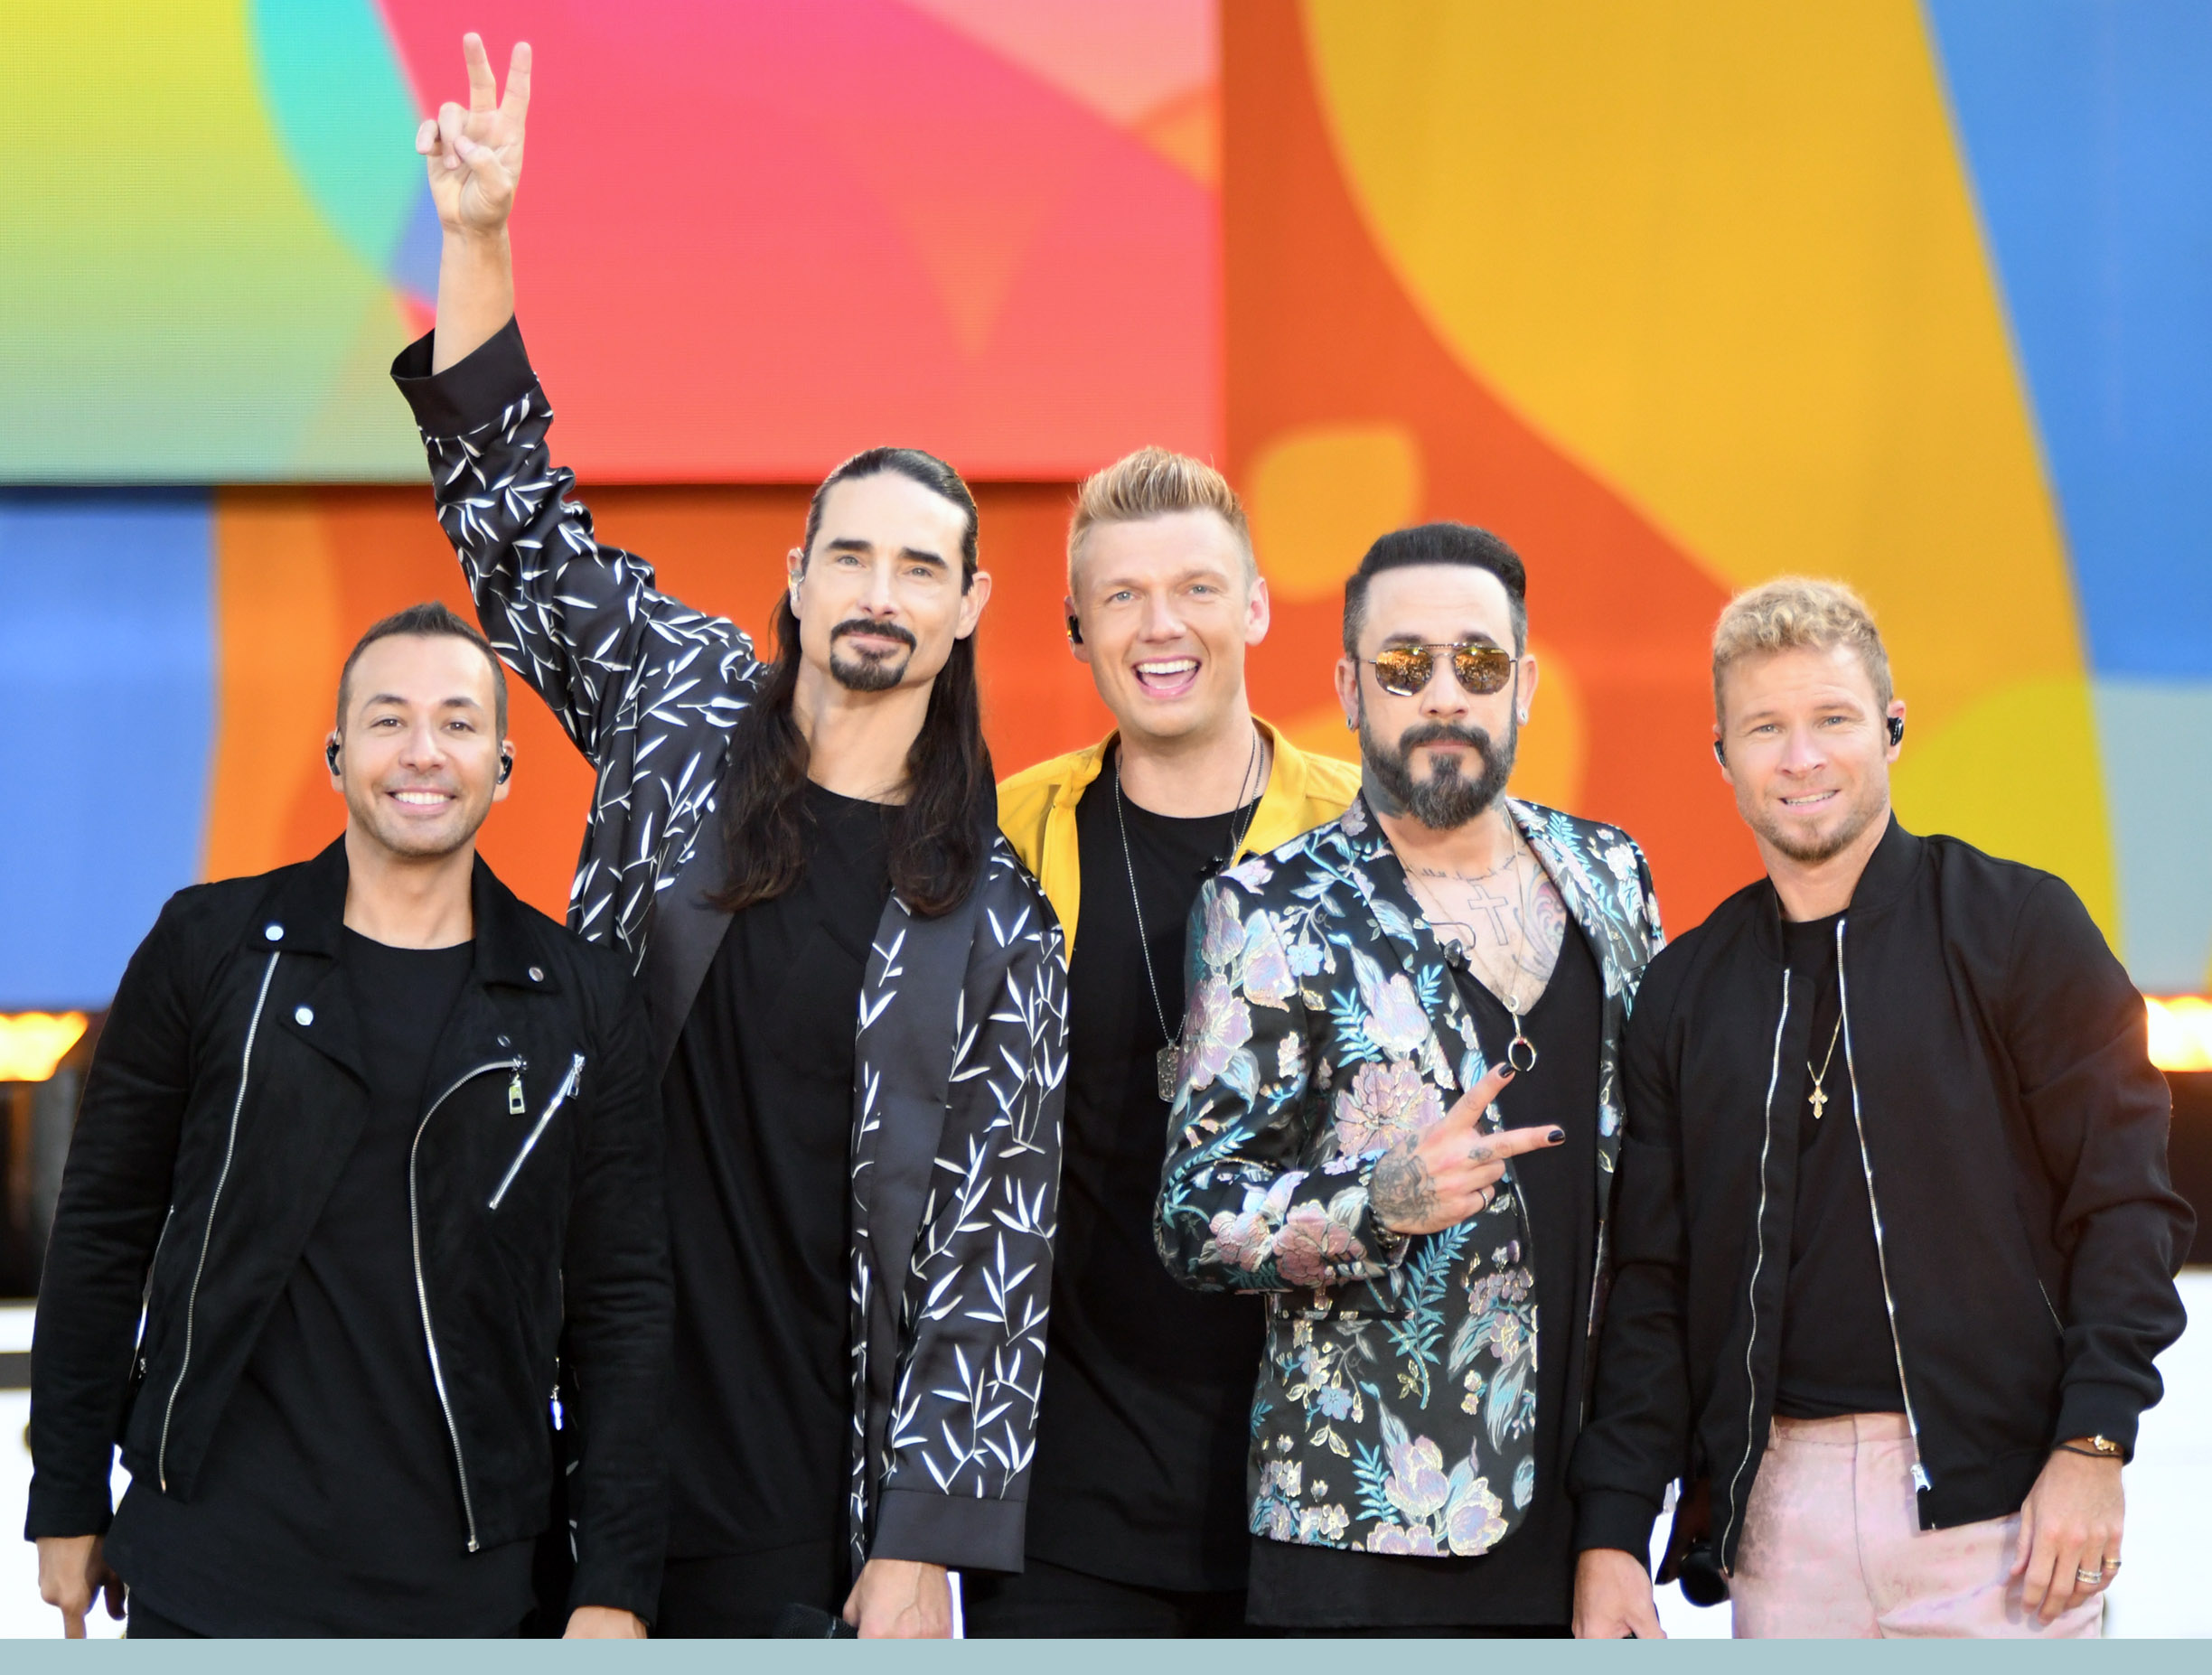 Backstreet Boys'Good Morning America' Summer Concert Series, New York, USA - 13 Jul 2018Backstreet Boys at the Good Morning America in New York City